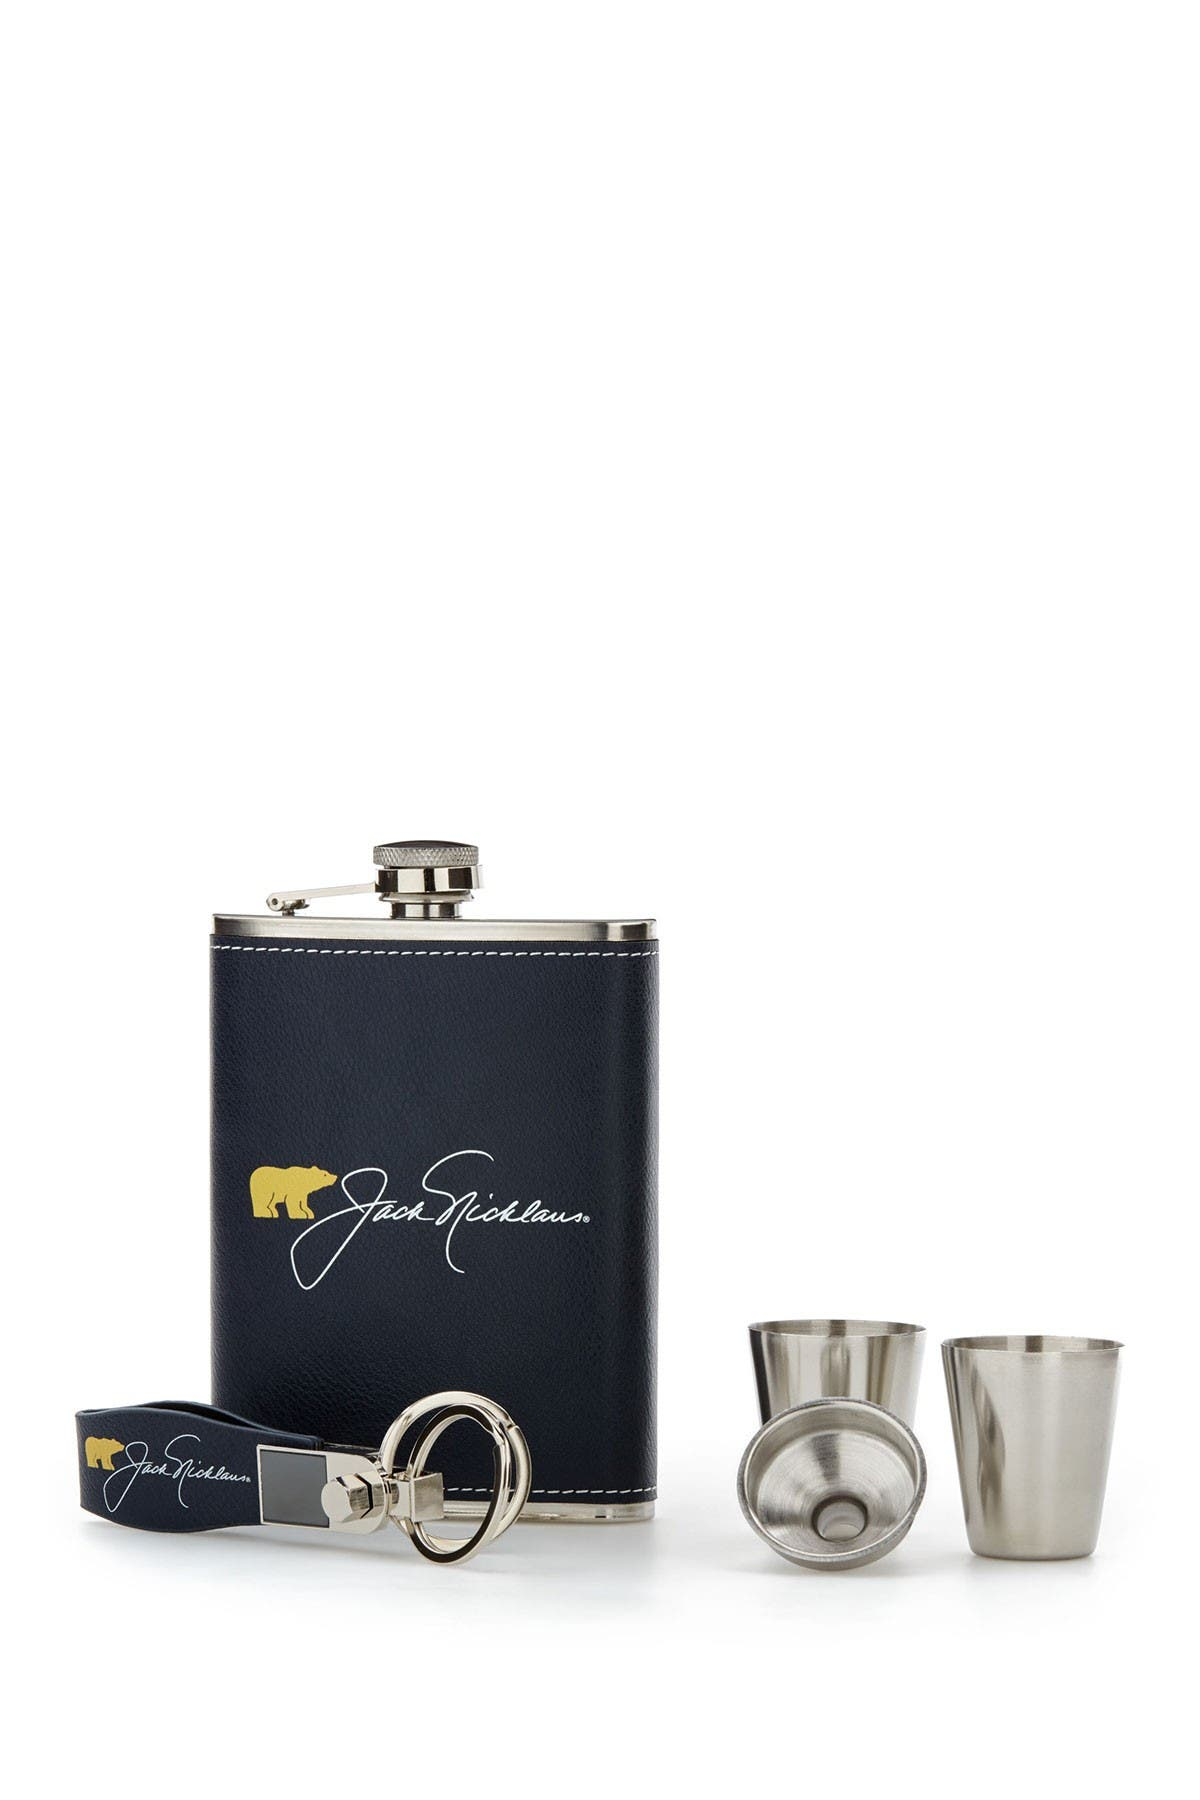 Image of Jack Nicklaus Flask & Keychain Gift Set